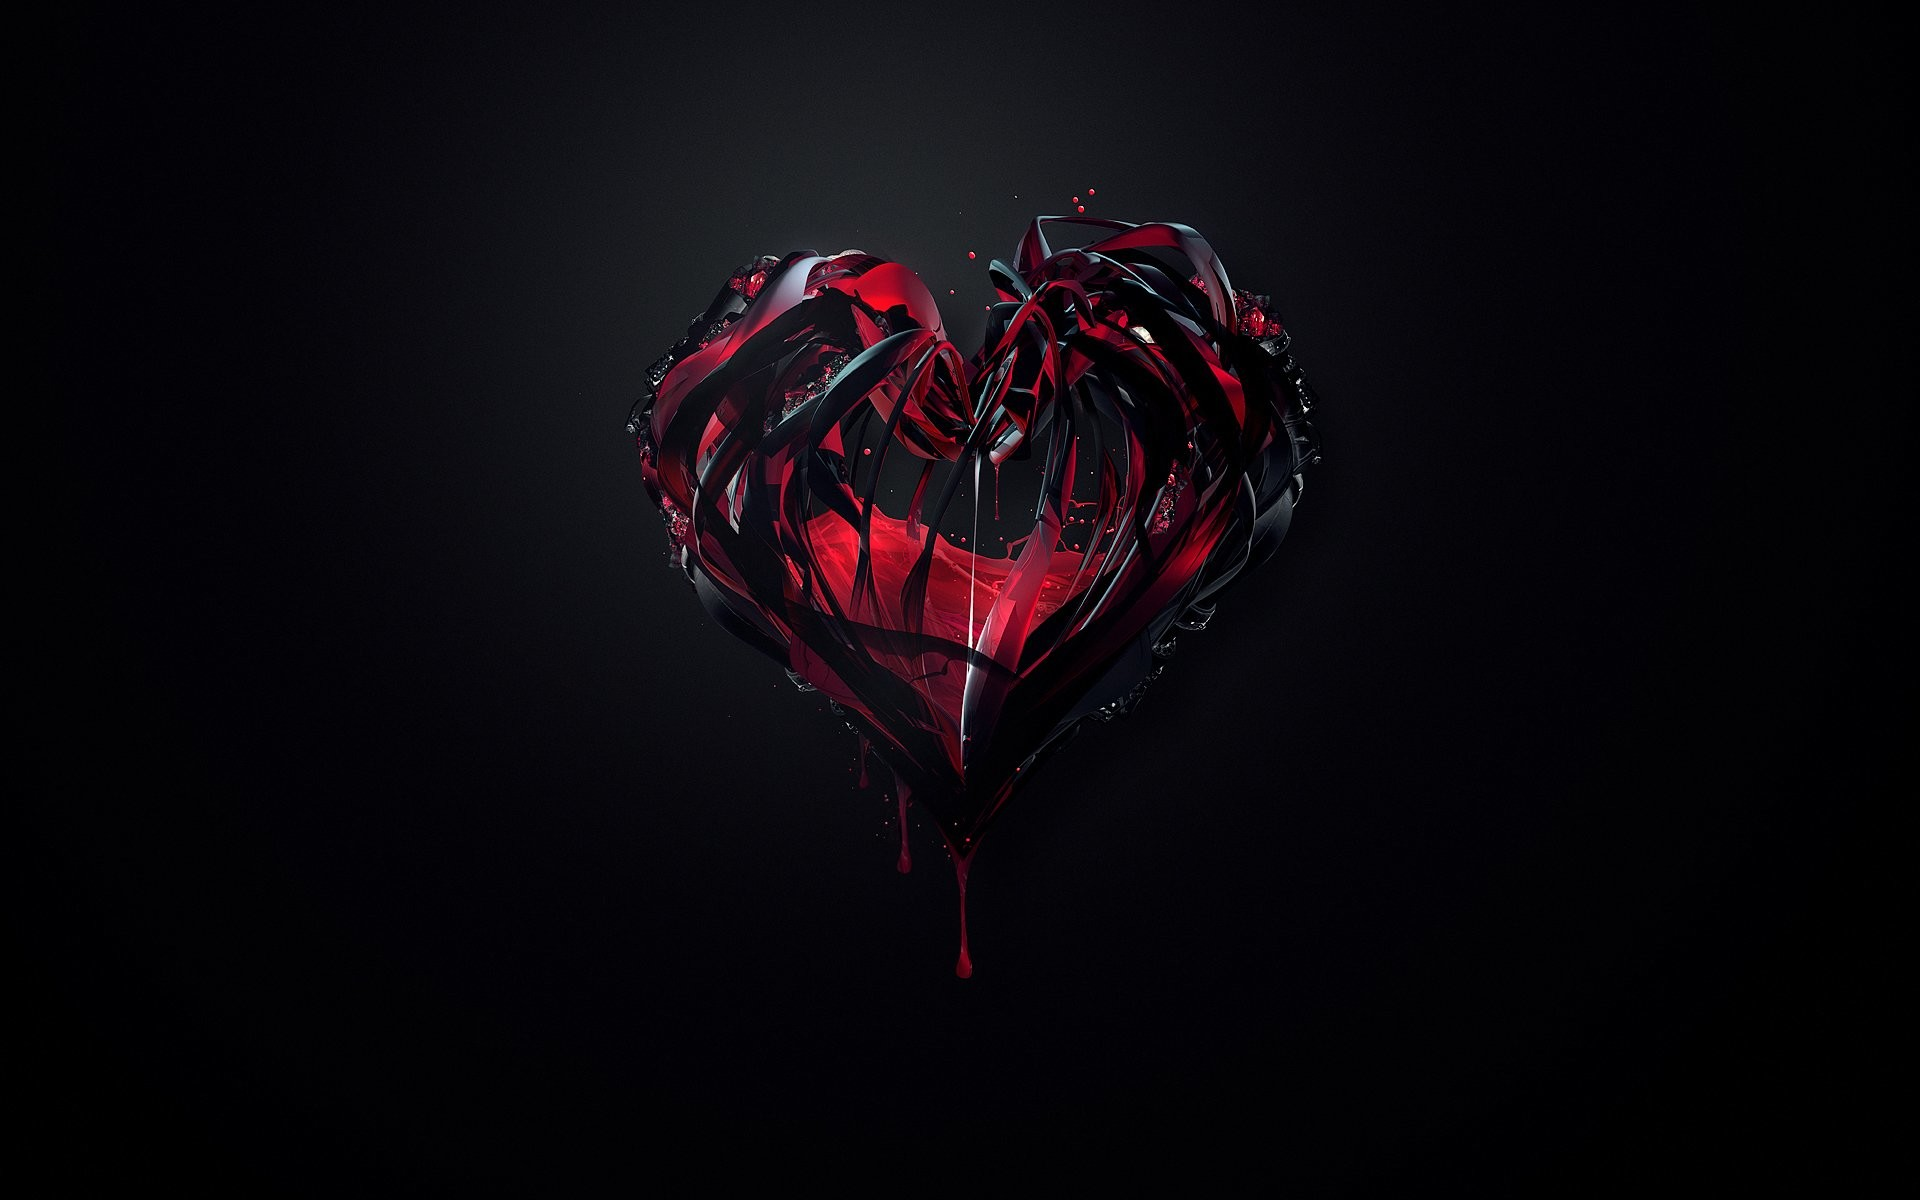 Black And Red >> Black And Red Heart Wallpaper 61 Images